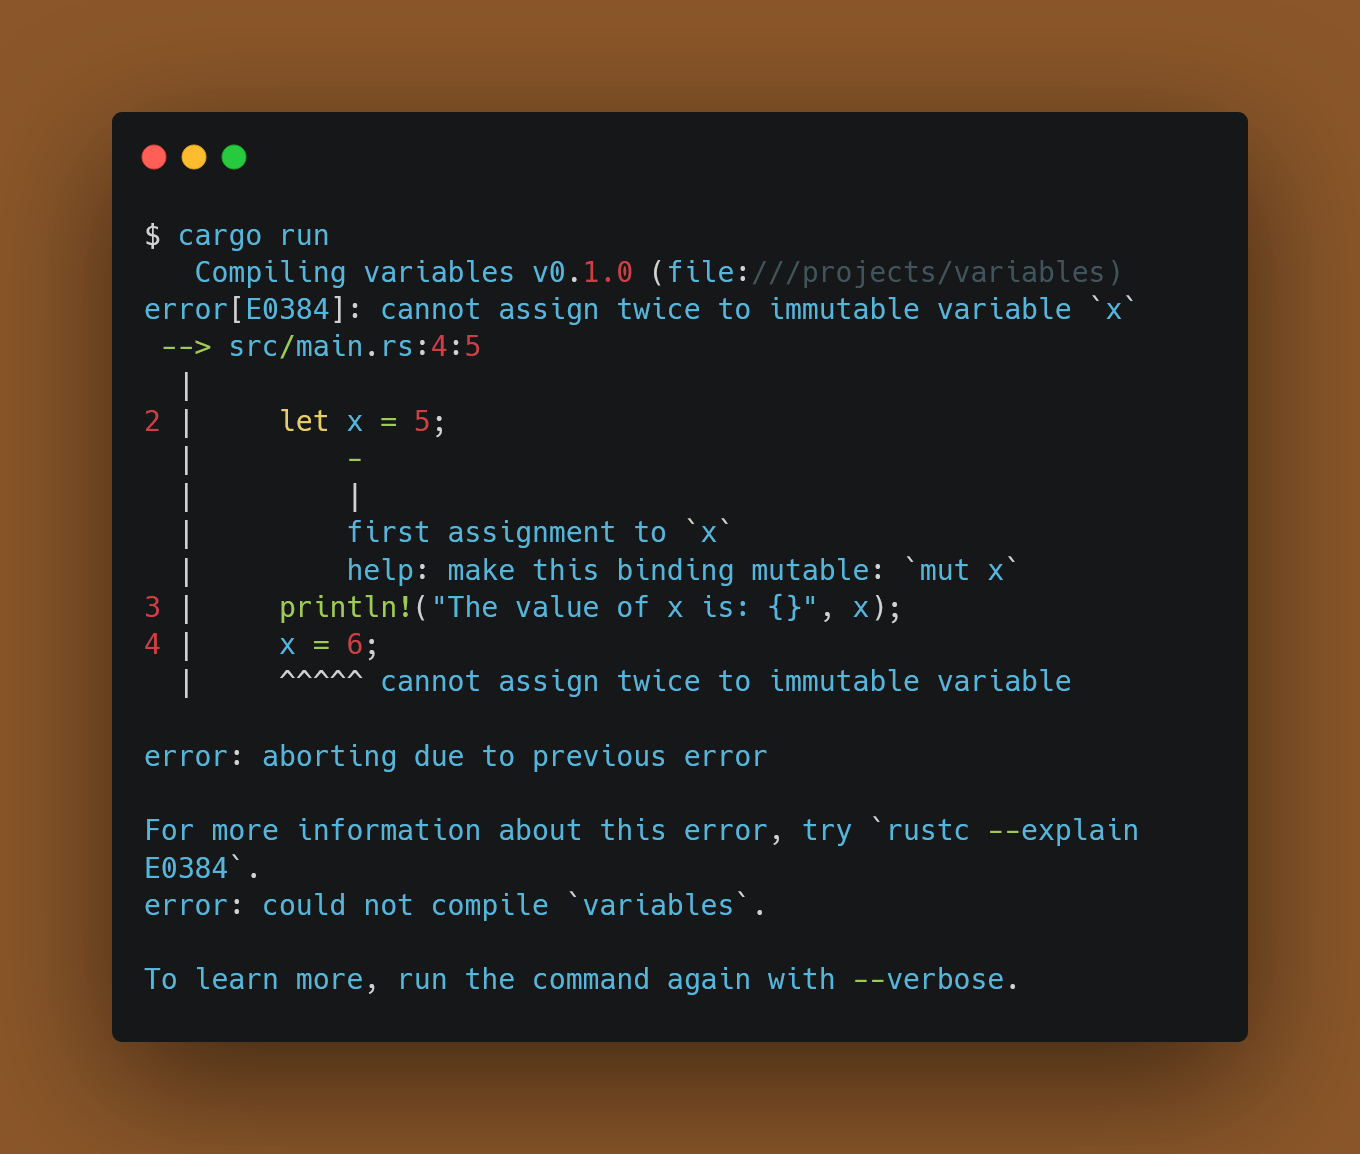 Compile error: cannot assign Twice to Immutable variable